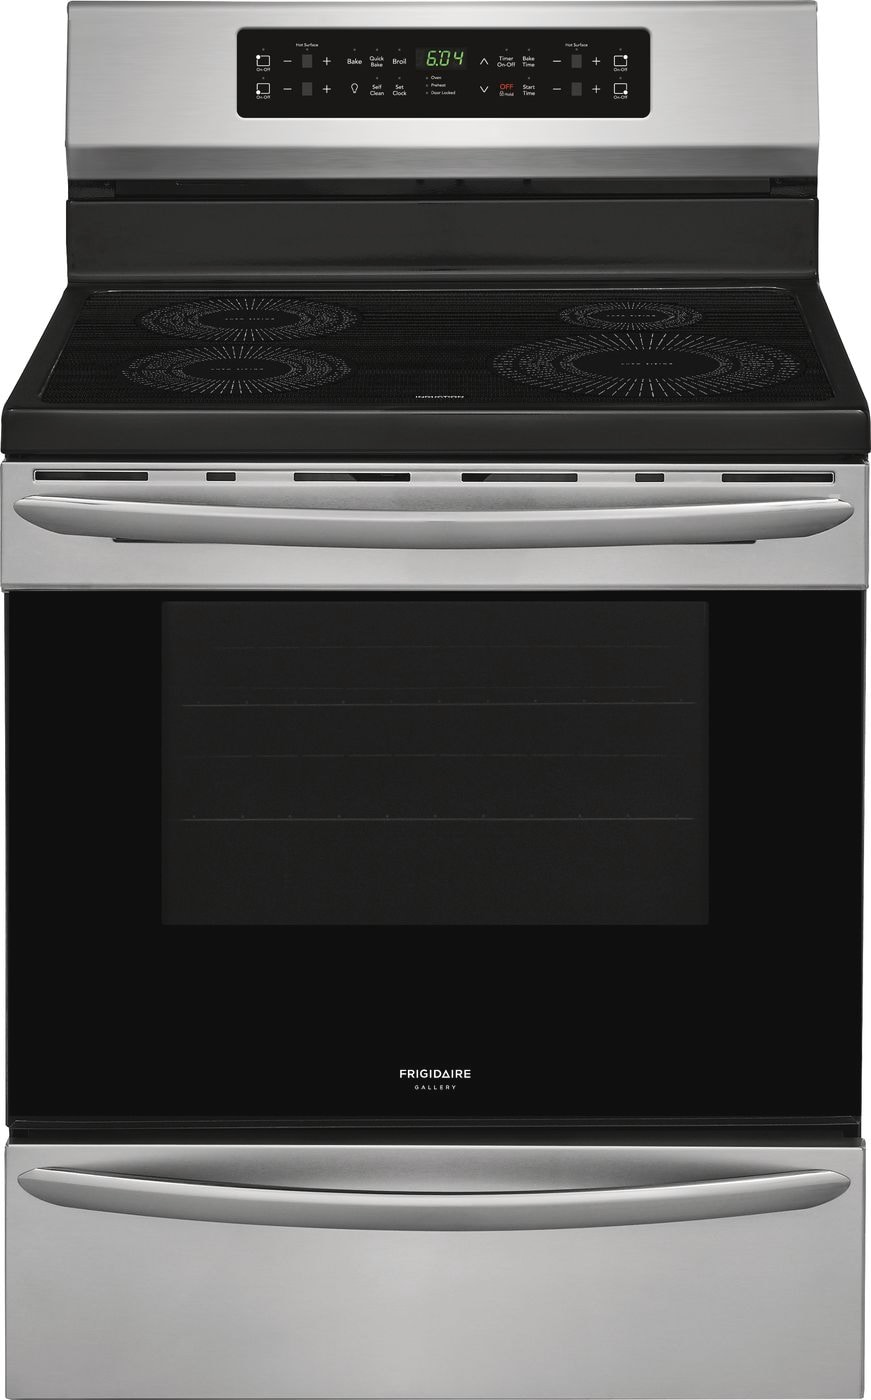 "Model: FGIF3036TF | Frigidaire Gallery 30"" Freestanding Induction Range"